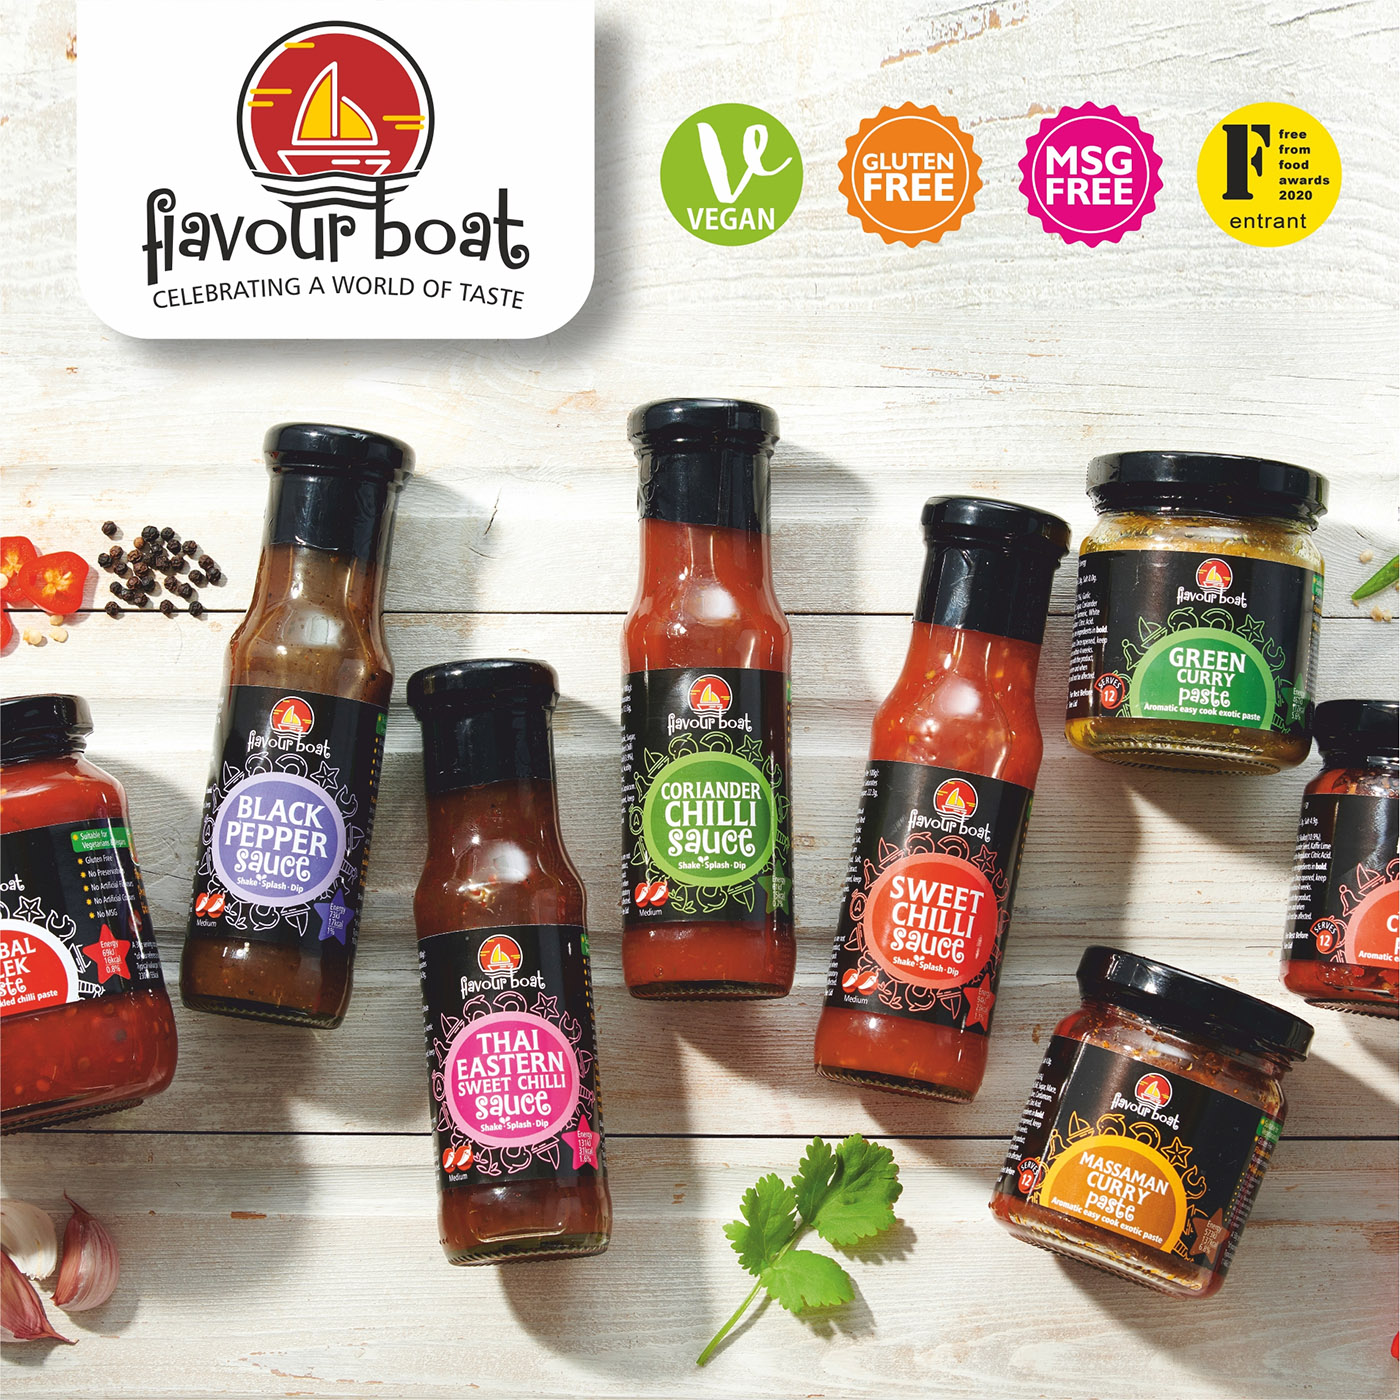 flavour boat sauces and pastes